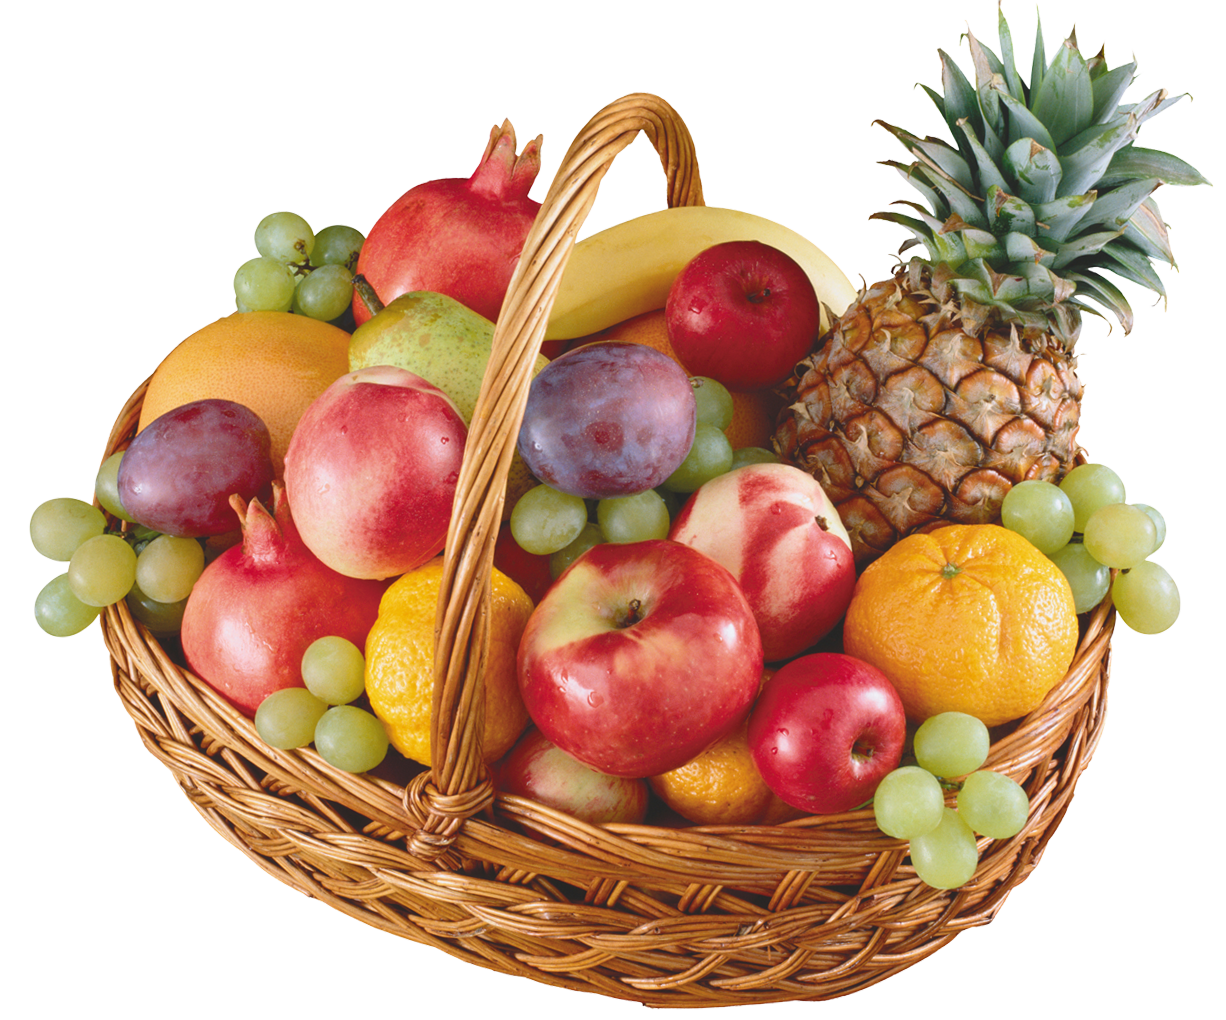 Heart clipart fruit. Basket with fruits png